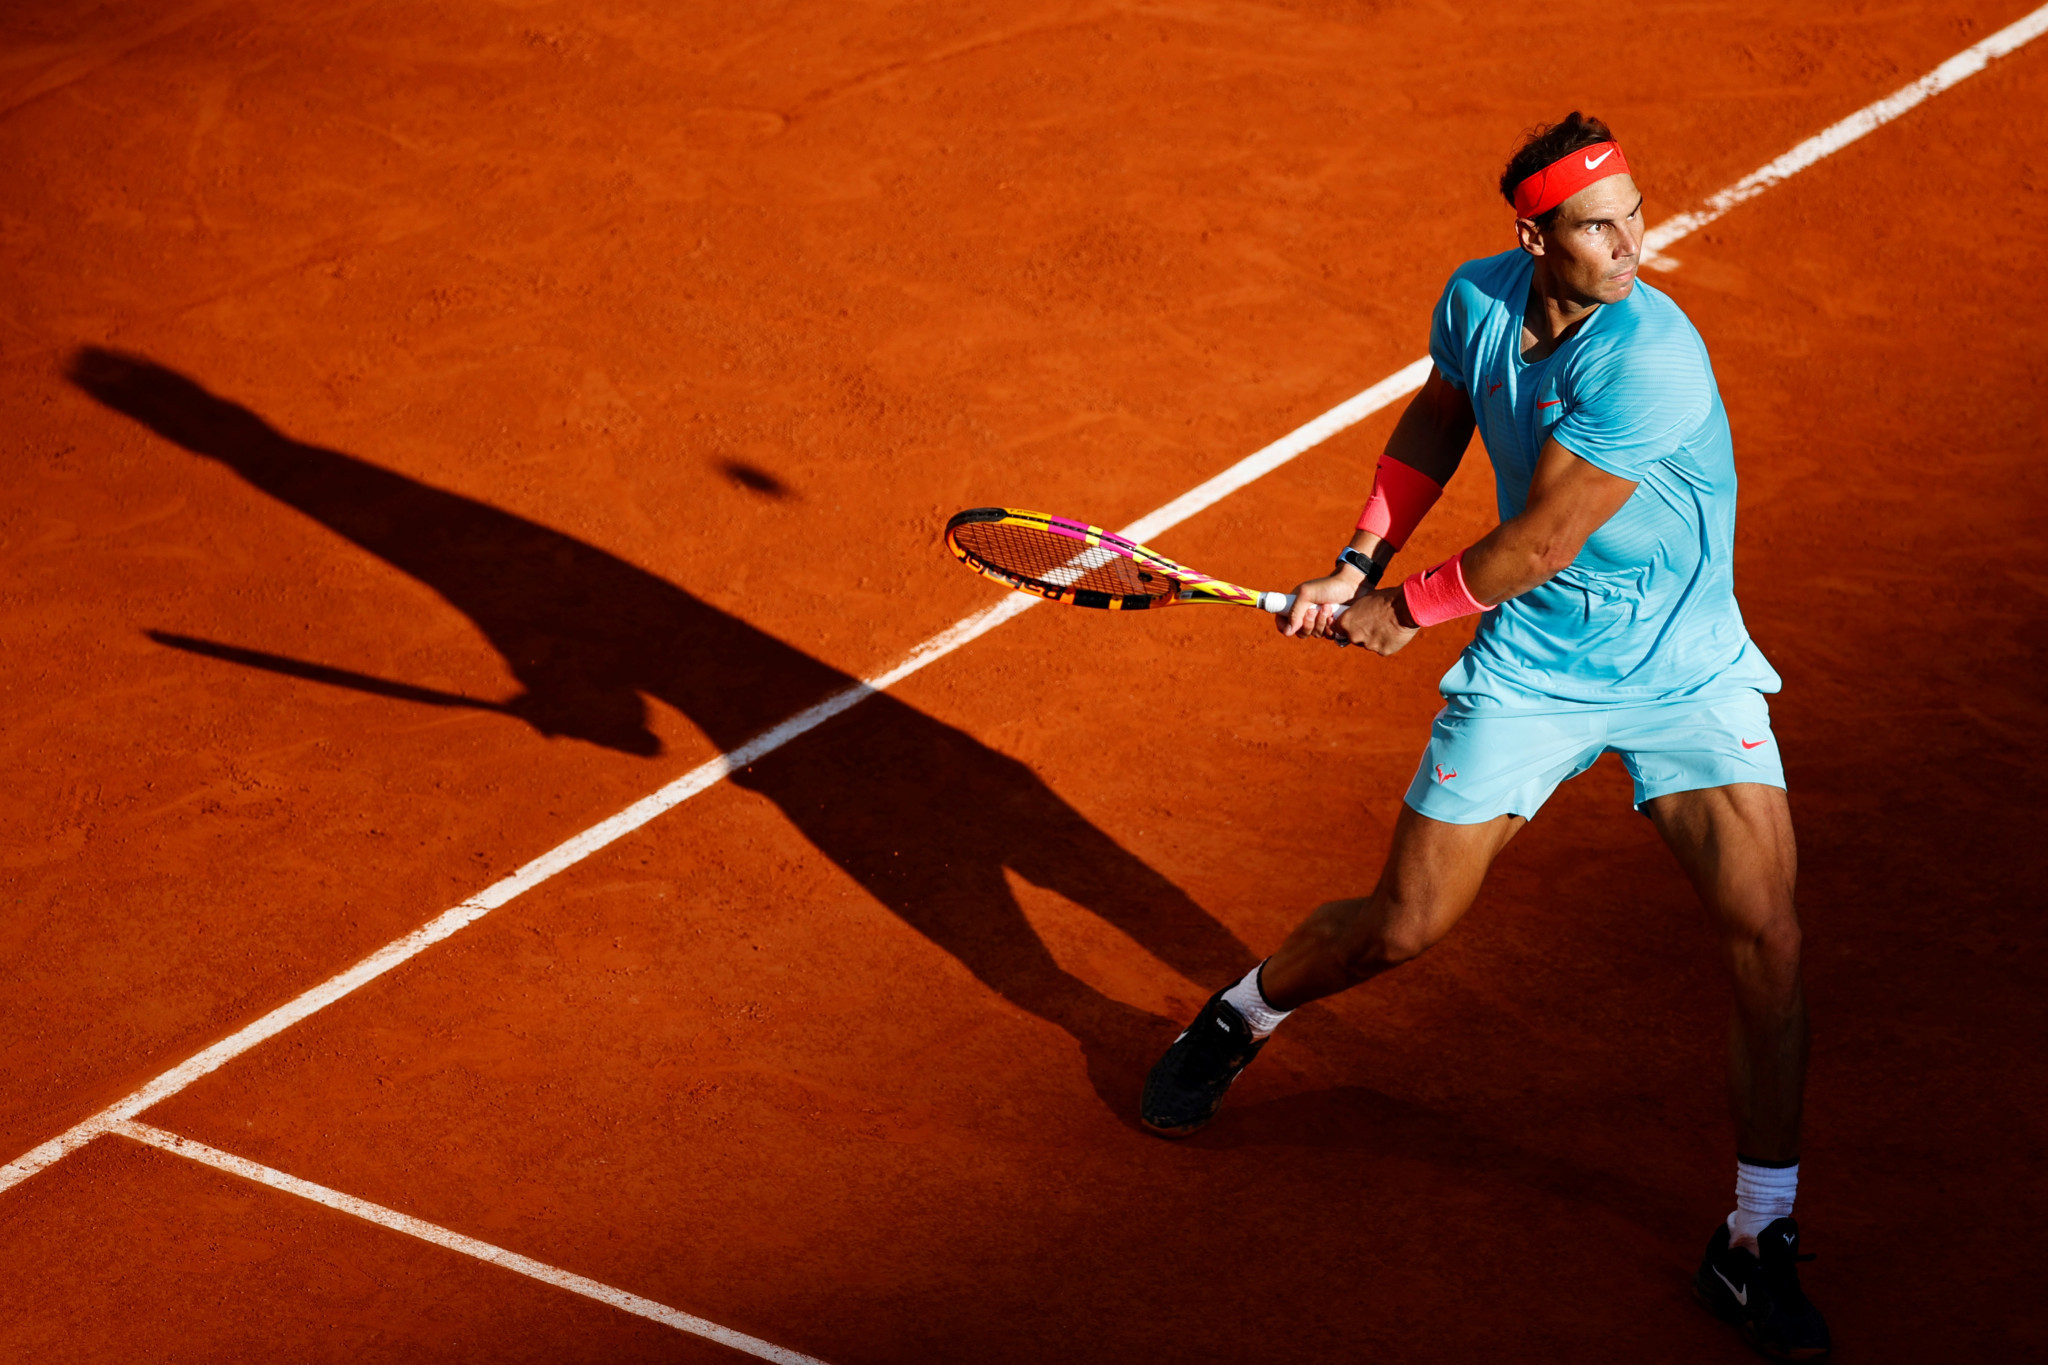 Djokovic stays unbeaten in 2020 to set up French Open final versus Nadal